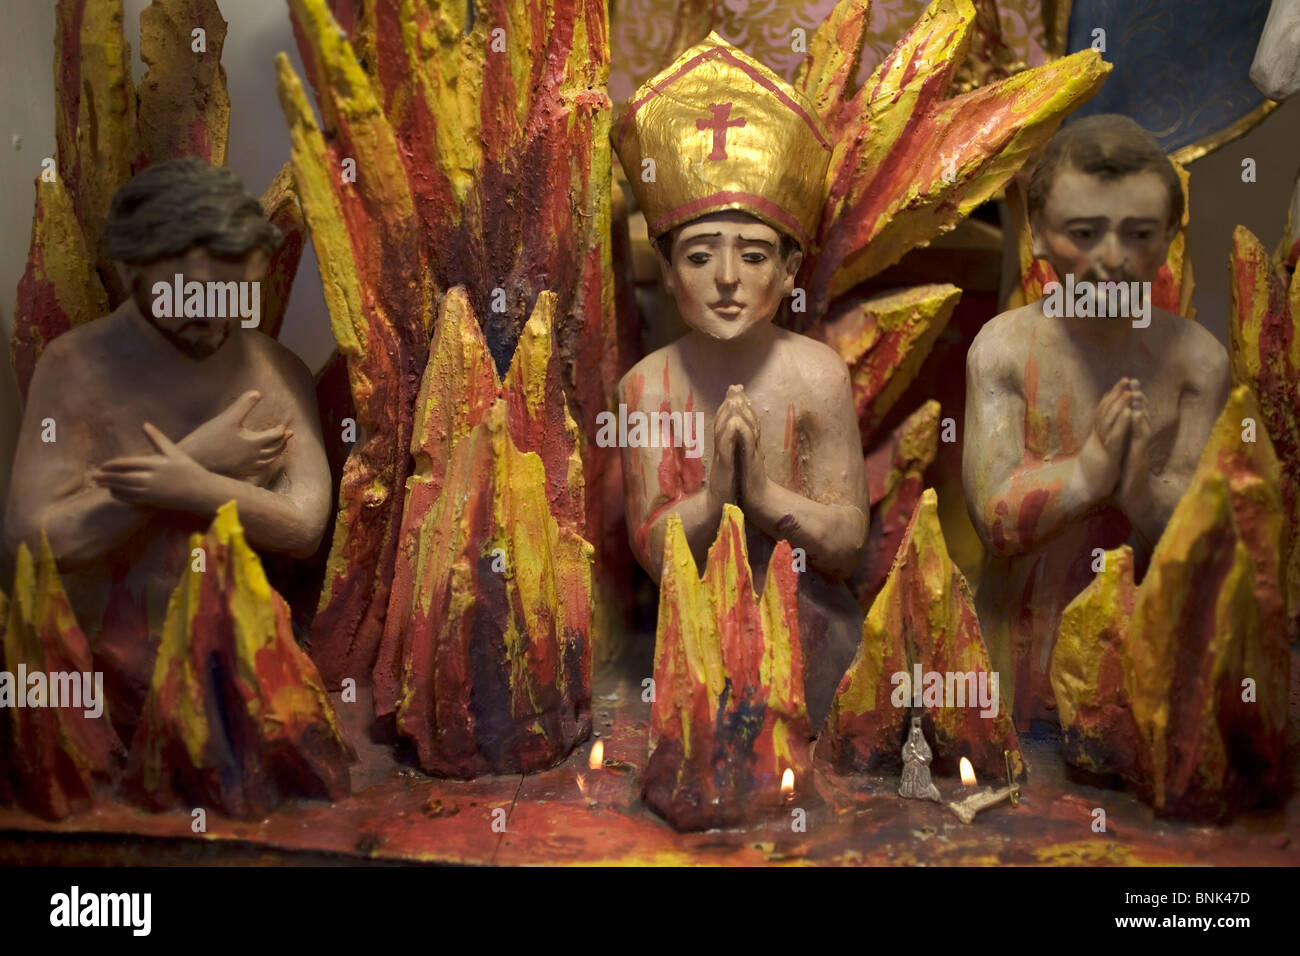 Sculptures of priests and a bishop burning in hell are displayed in a church of San Miguel de Allende, November Stock Photo